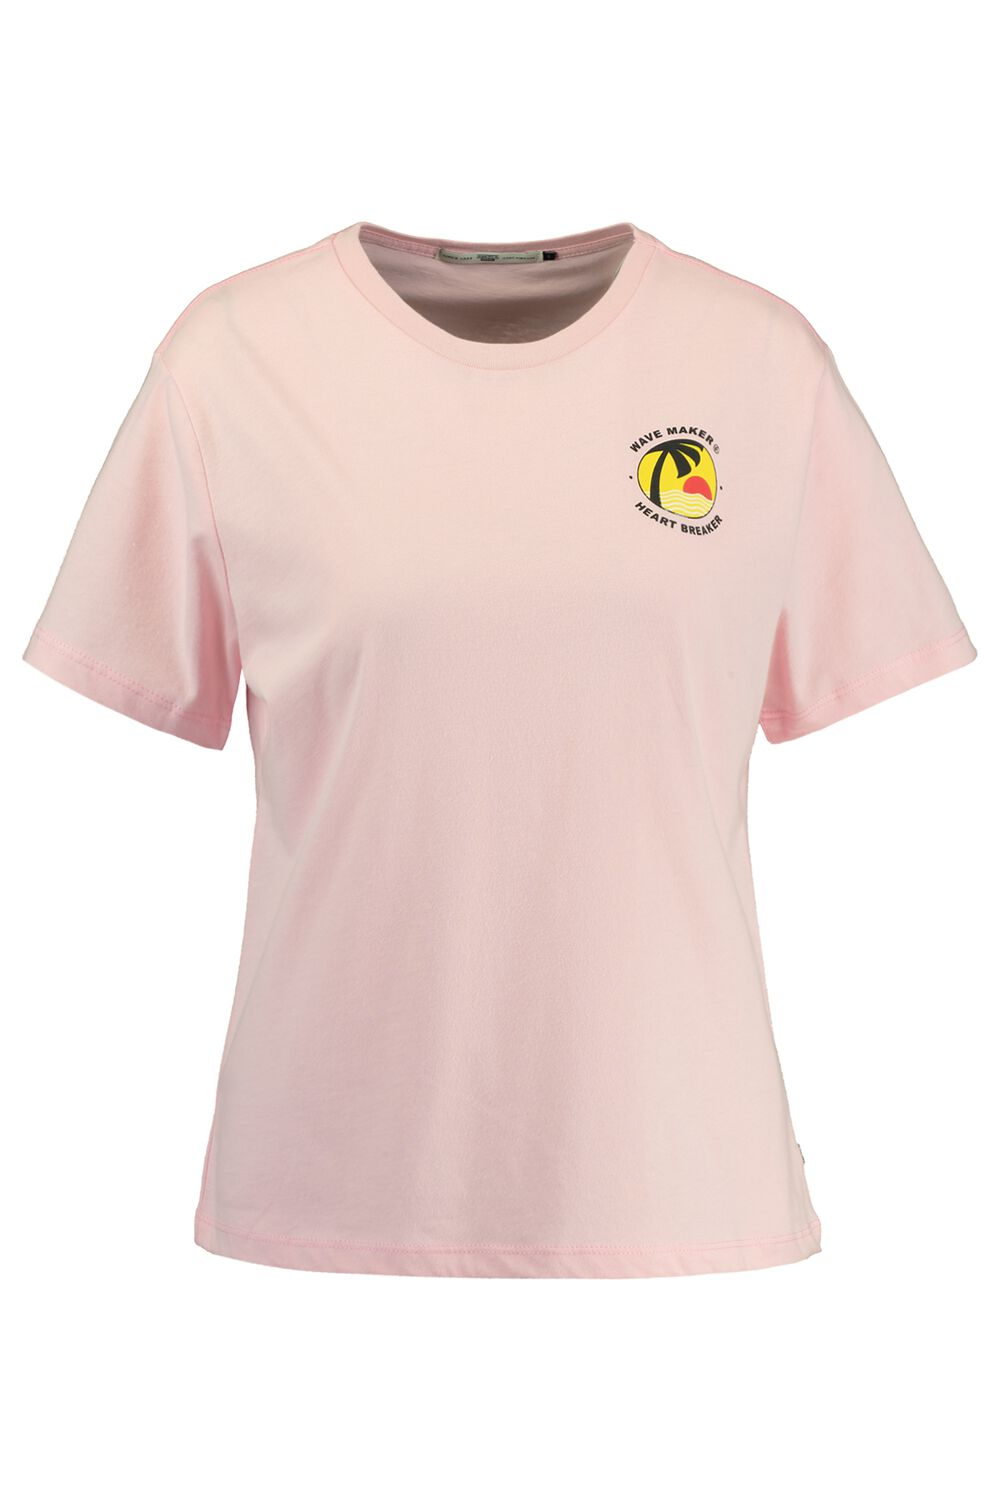 America Today Dames T-shirt Elanore Roze